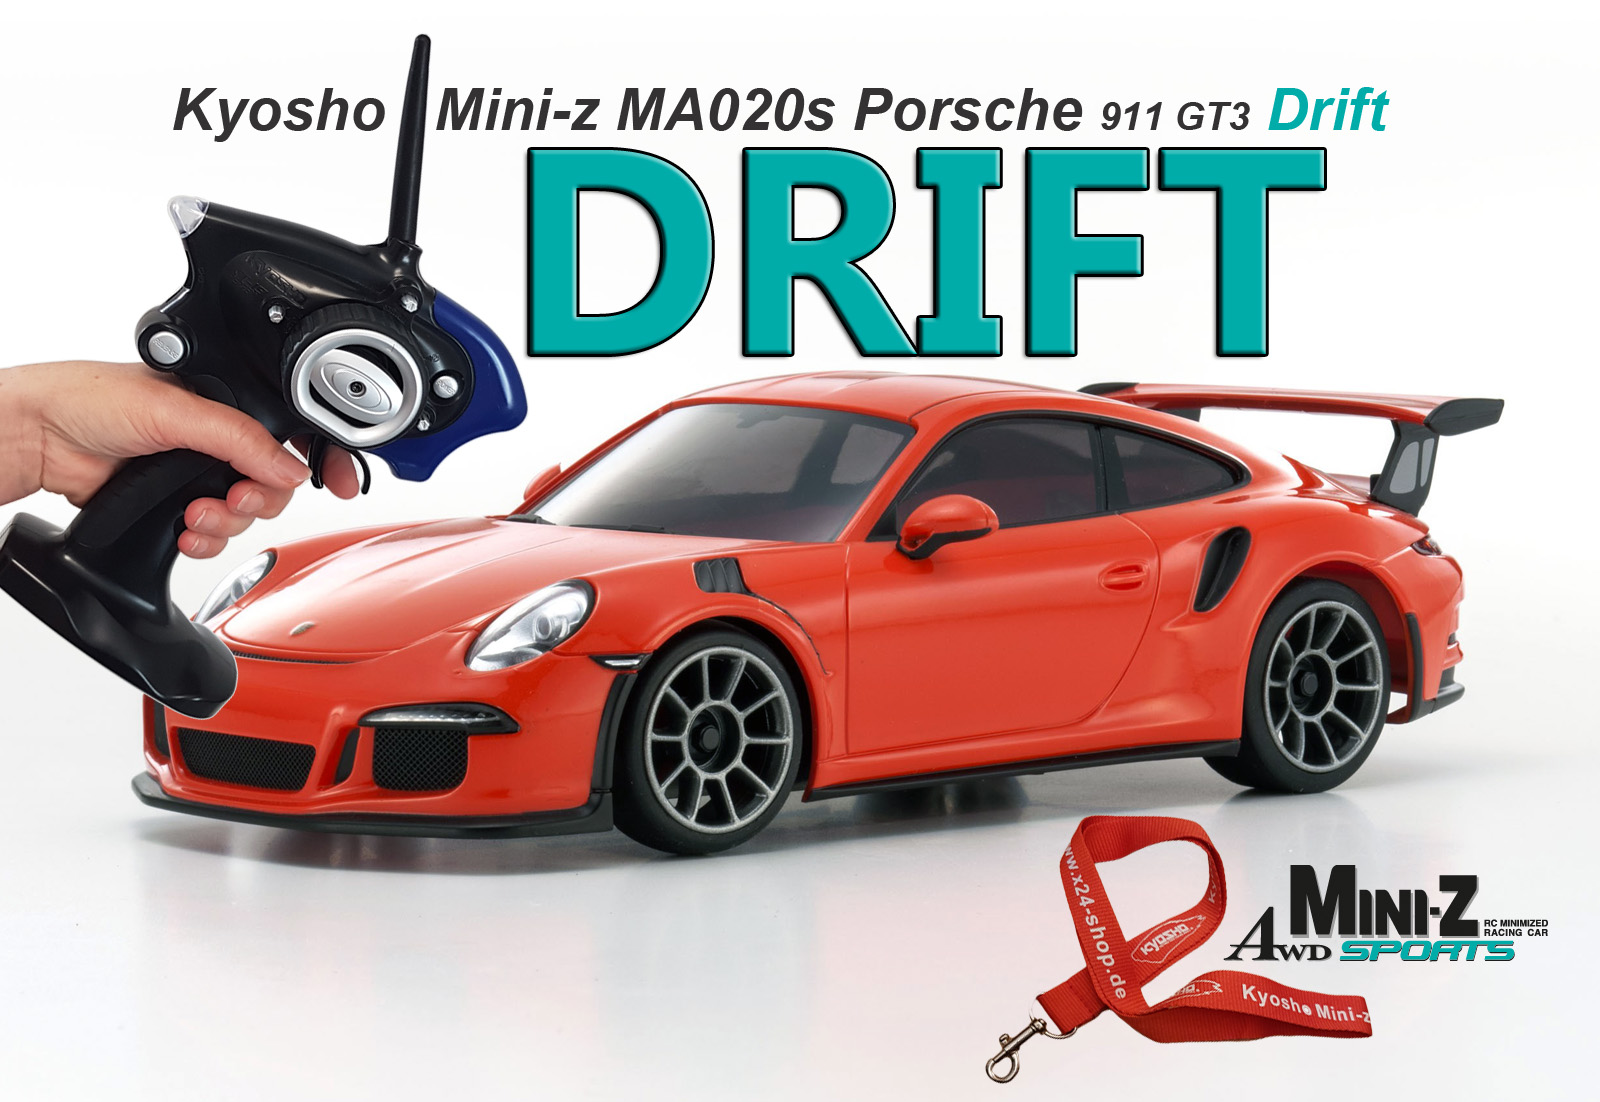 mini z drift ma020 sports porsche 911 gt3 x24 shop. Black Bedroom Furniture Sets. Home Design Ideas